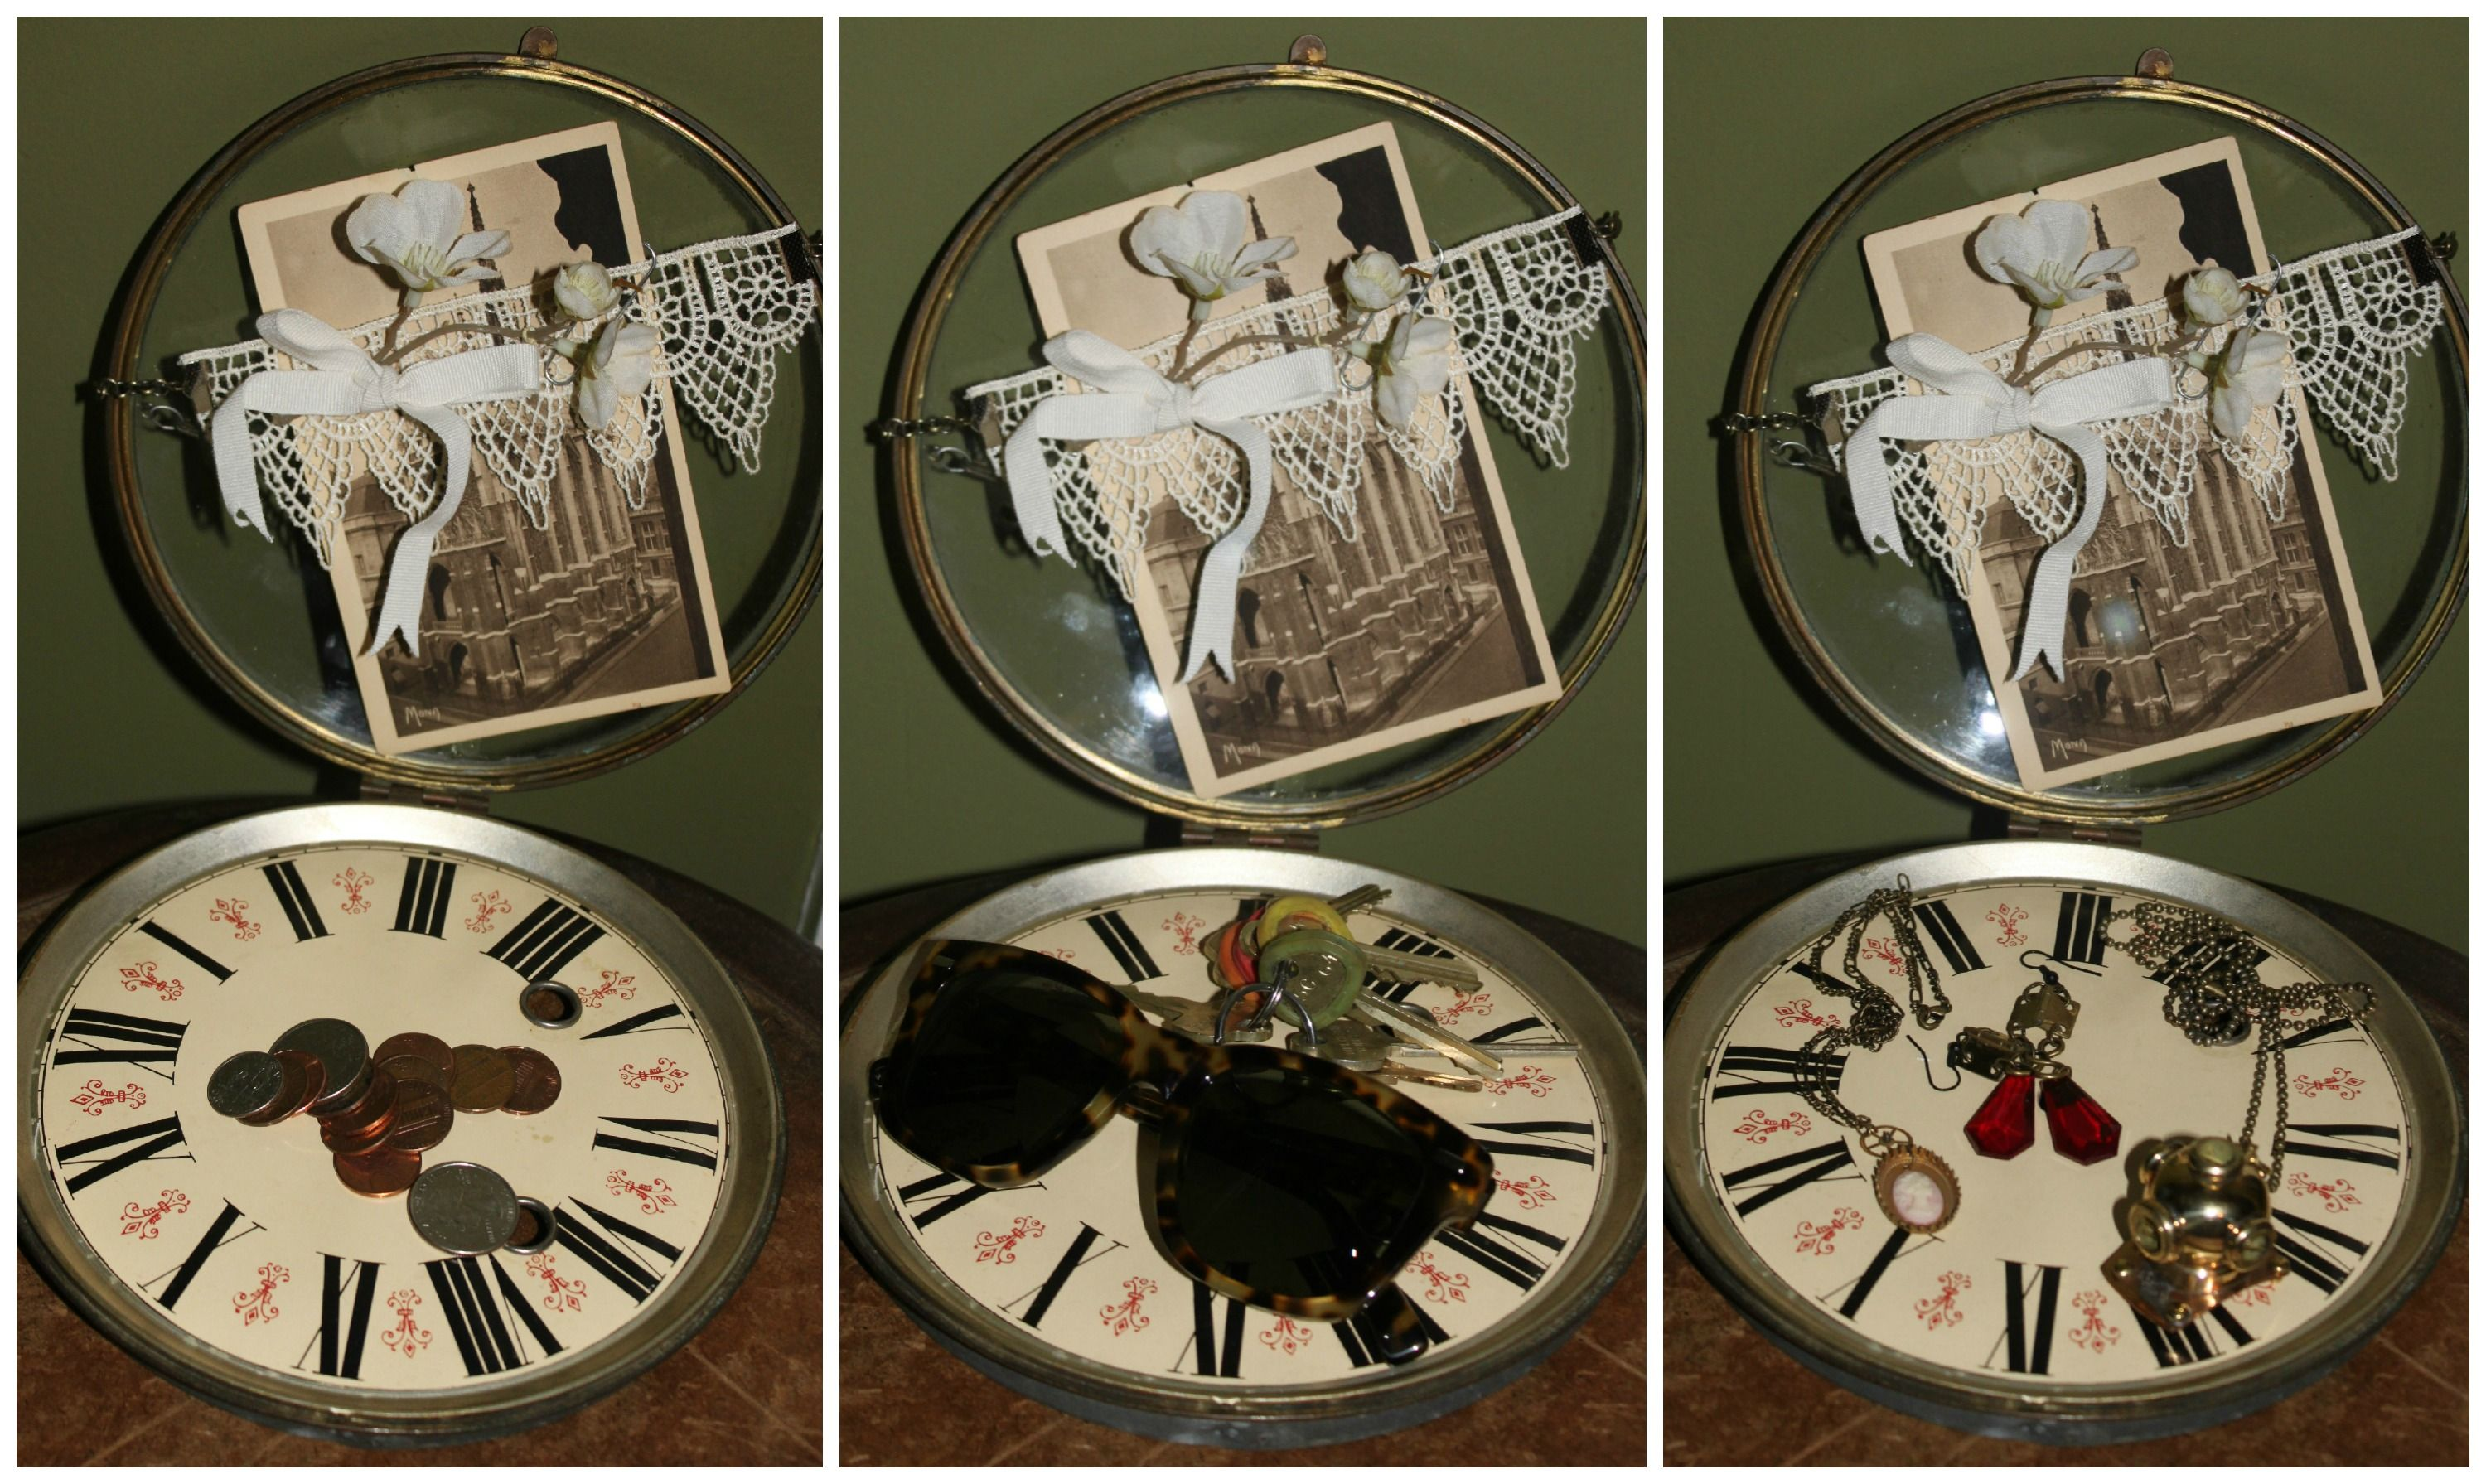 DIY Steampunk Home Decor: Clock Face Catch All